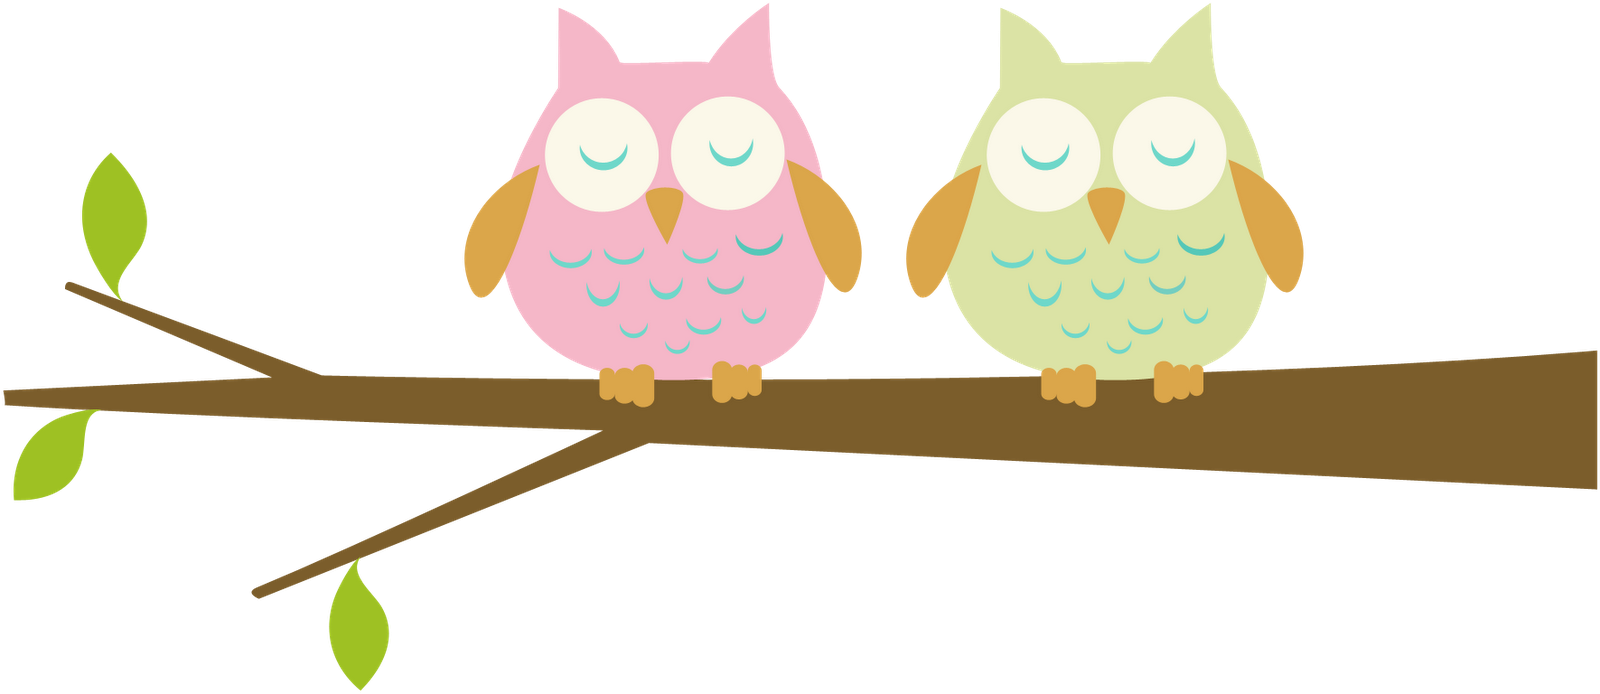 Images For > Baby Shower Owl Clip Art Free